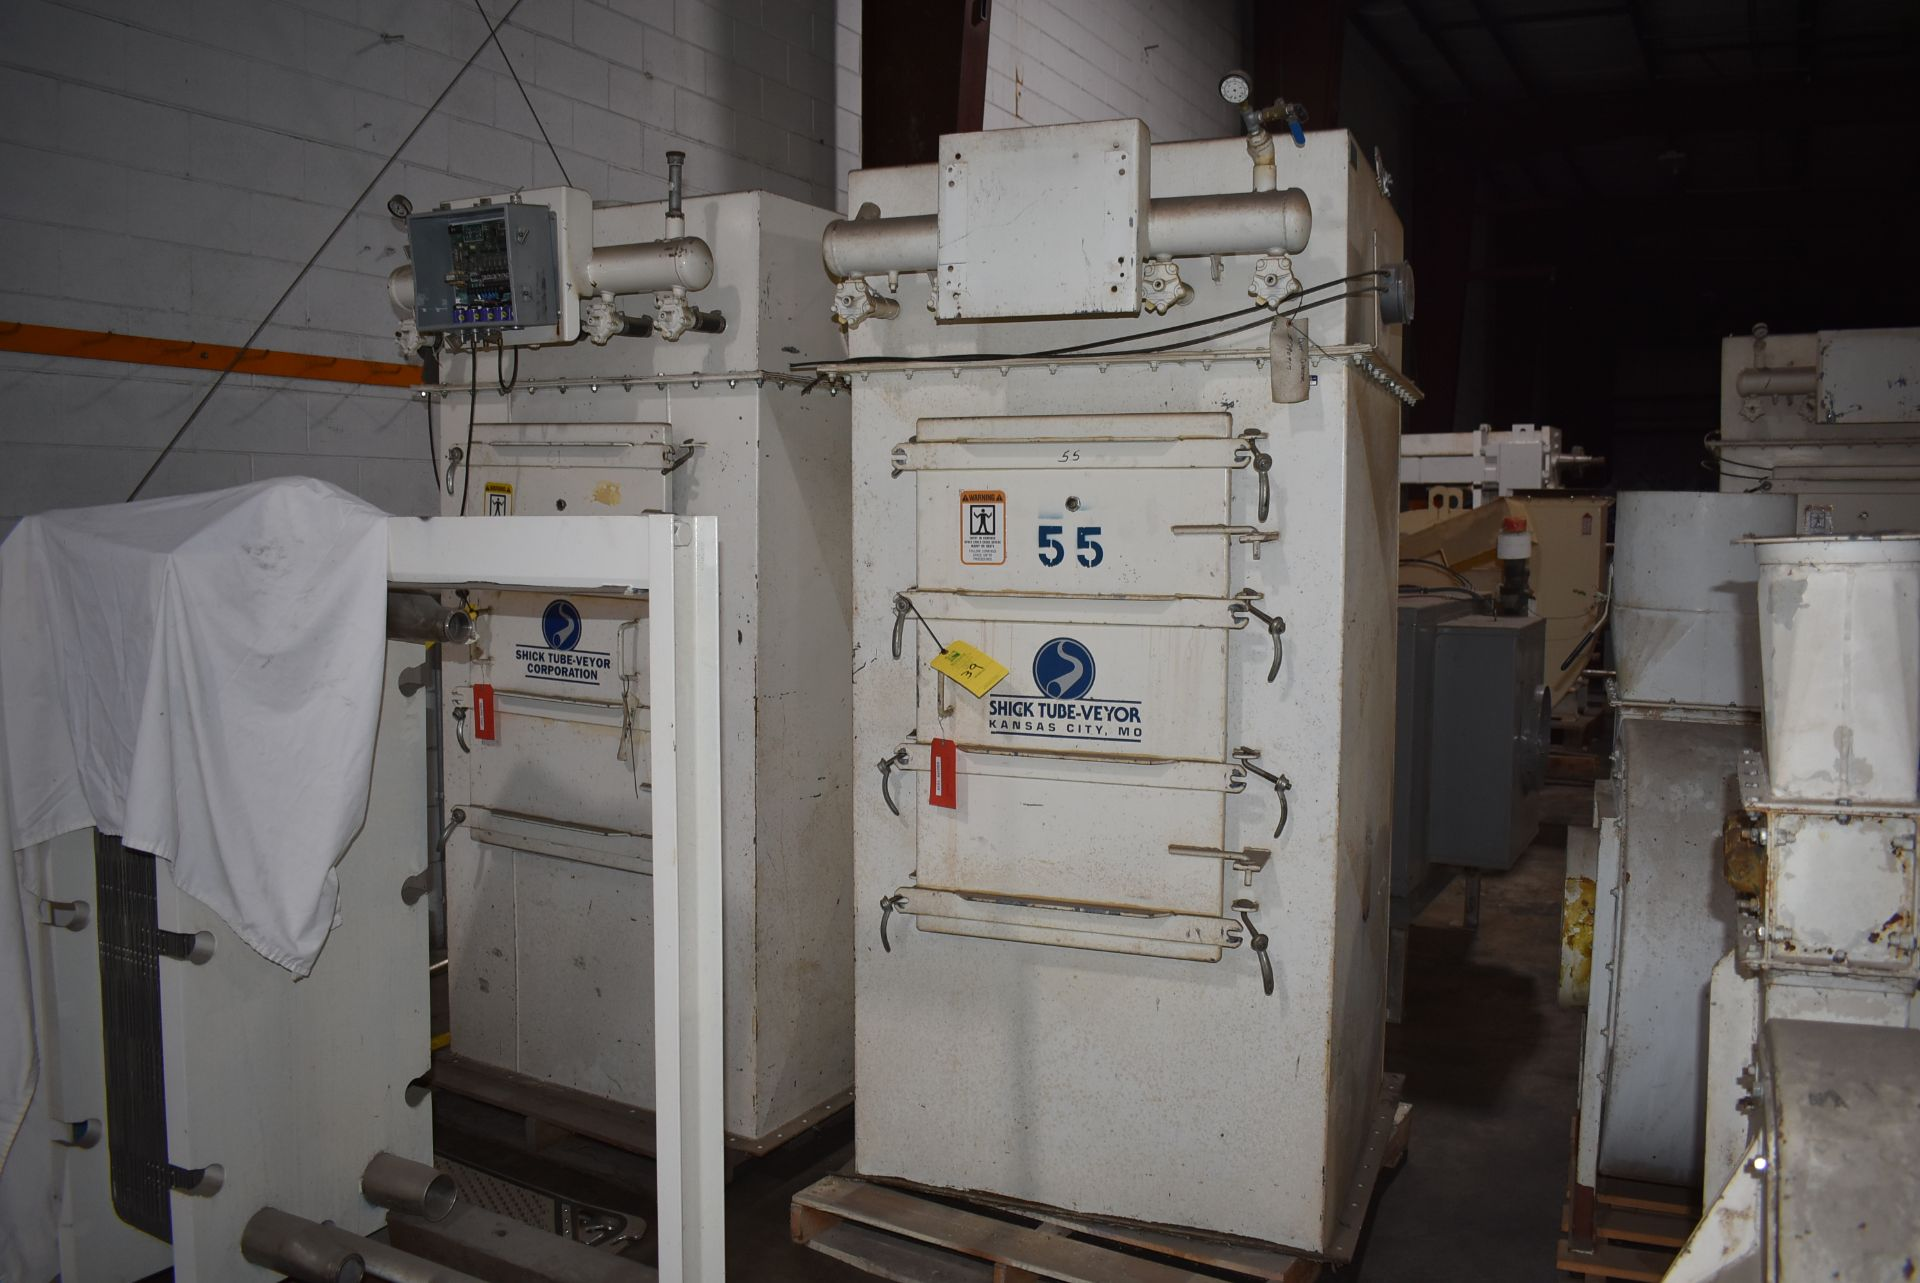 Shick Tube-Veyor Dust Collection System